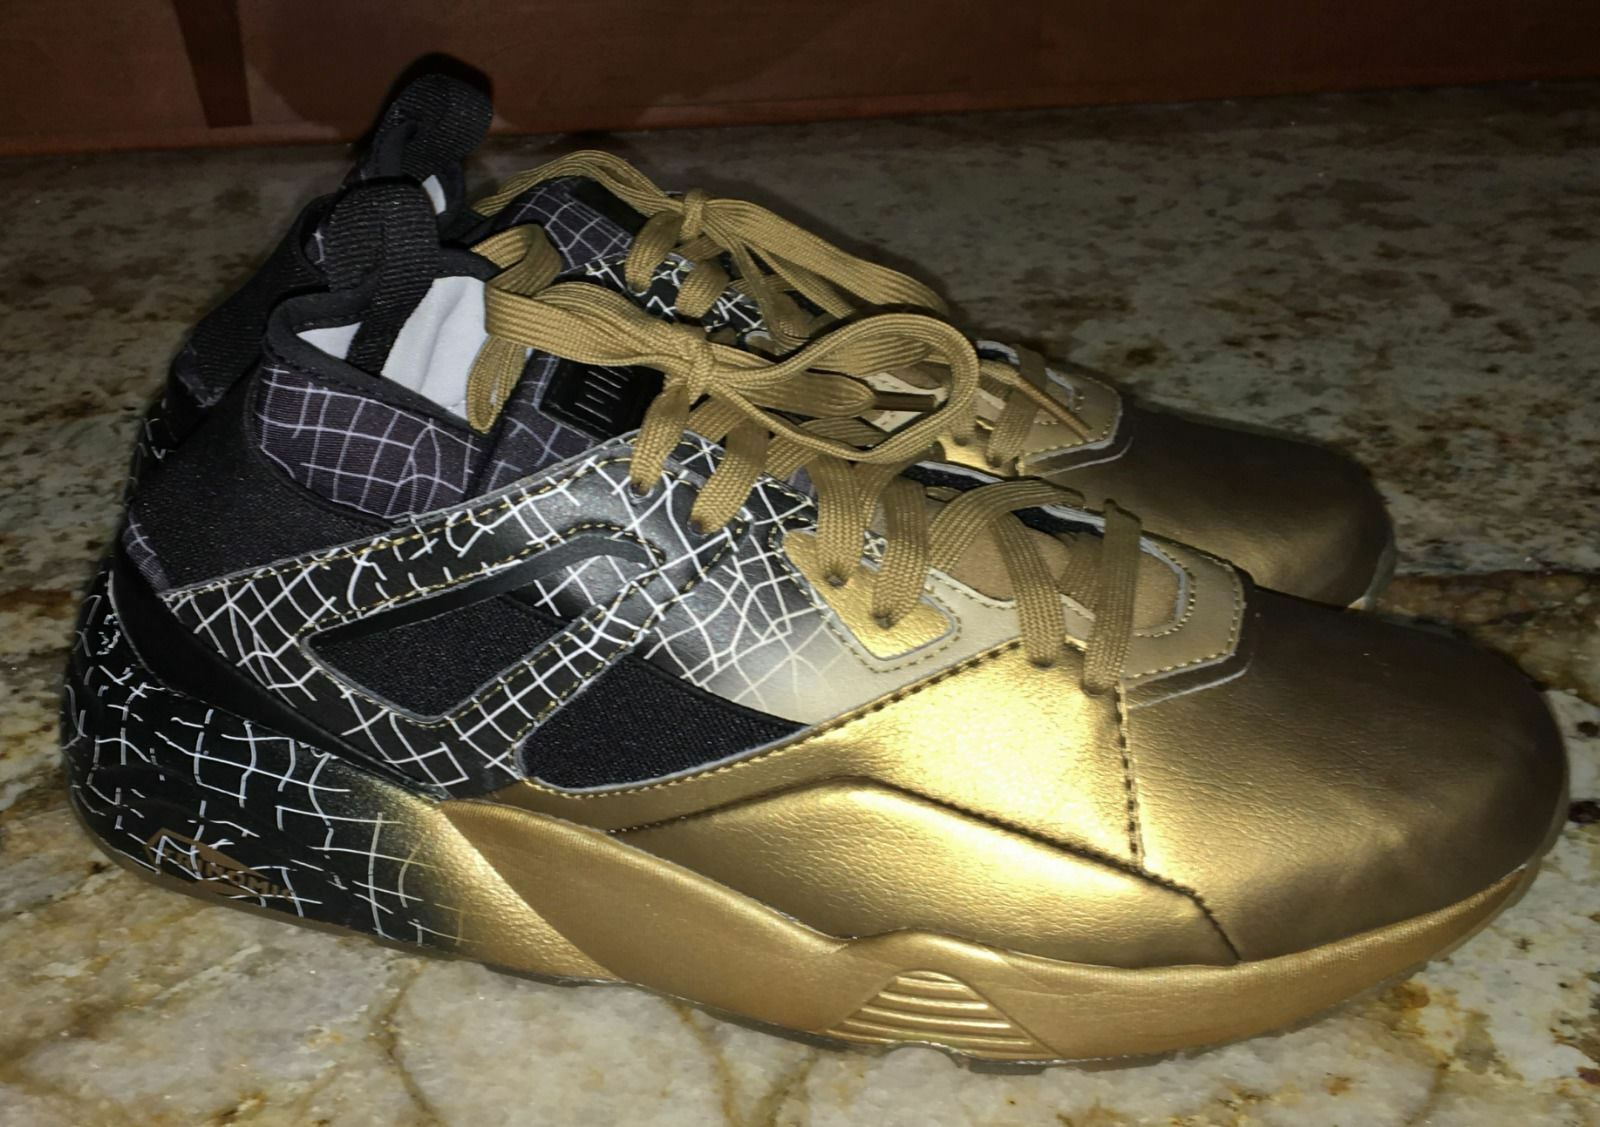 PUMA Blaze Of Glory Sock gold Black Lifestyle Leather shoes Sneakers Mens 8.5 9